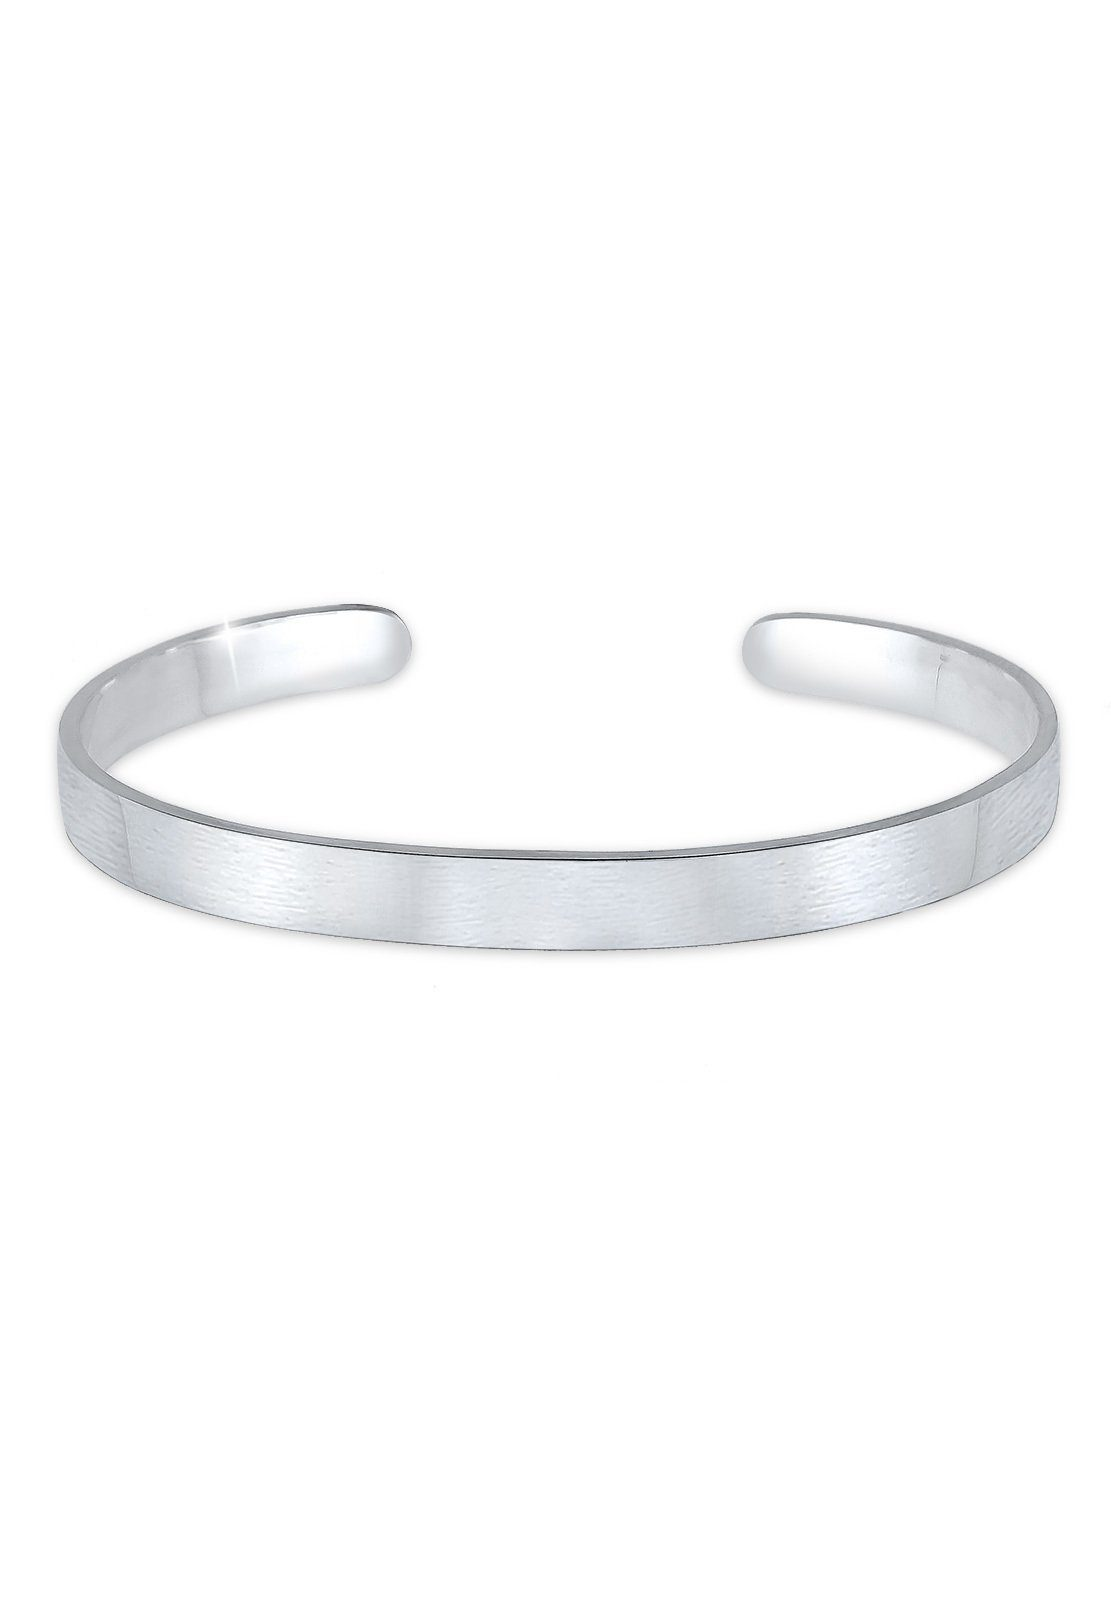 Paulo Fanello Armband »Basic Bangle matt 925 Sterling Silber«